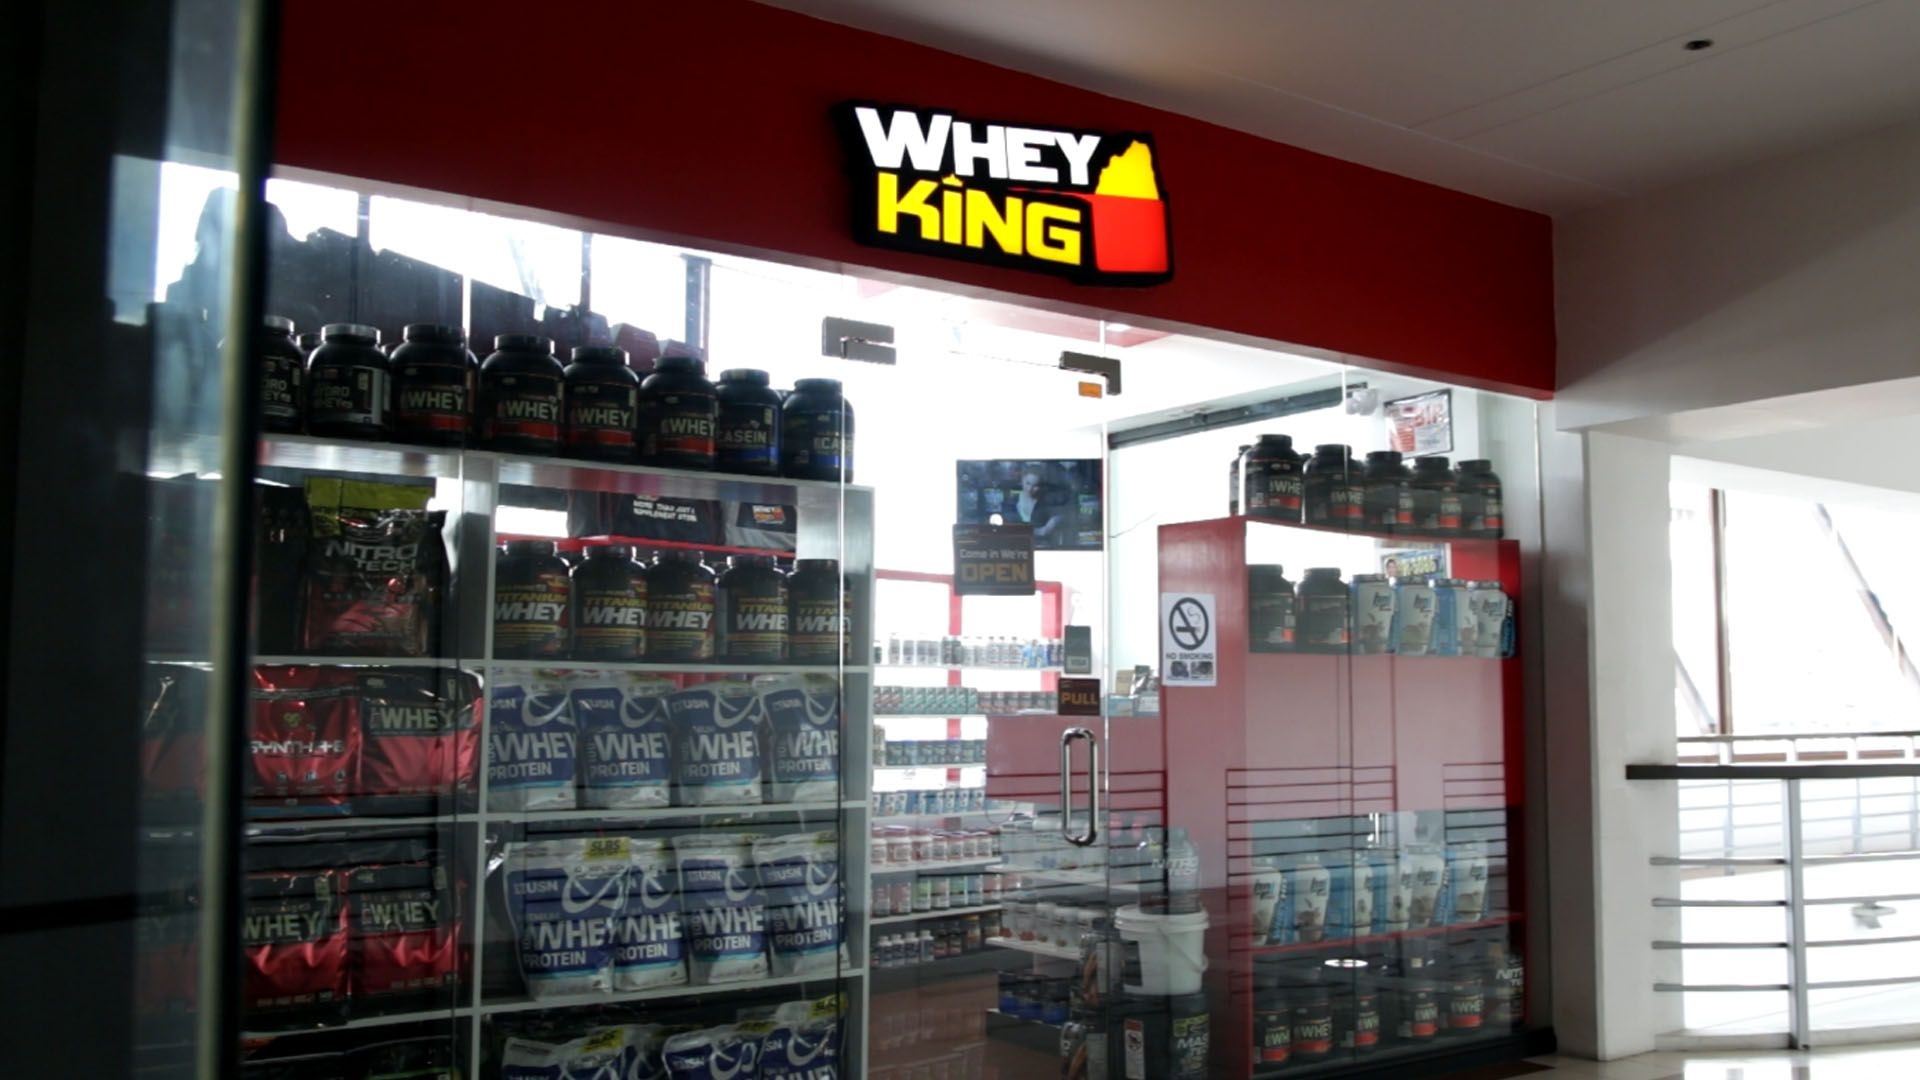 top 10 best whey protein shakes to buy in the philippines - whey king supplements branch